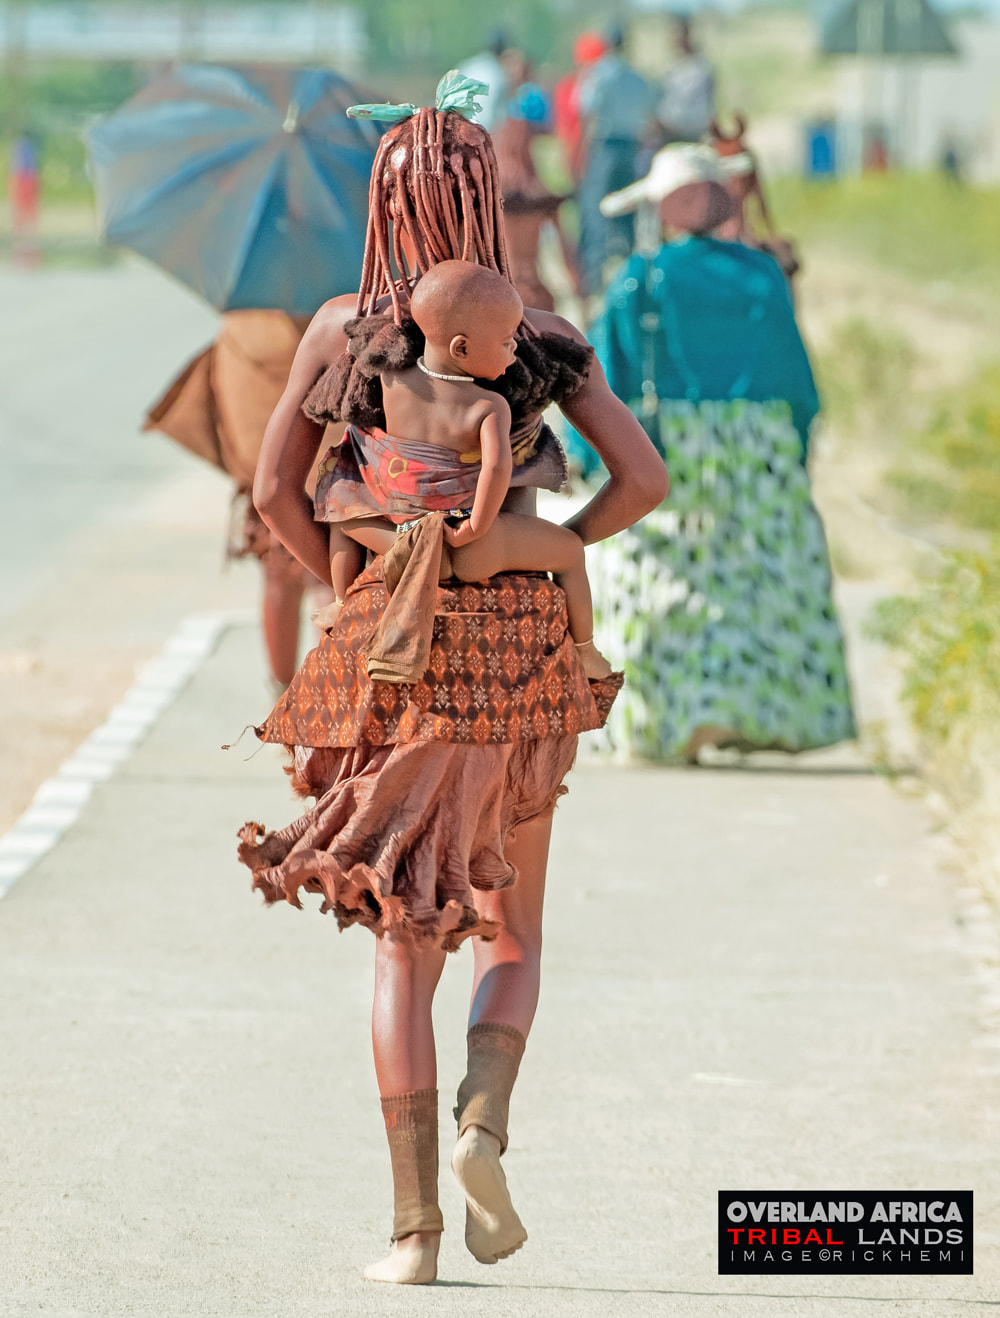 overland Africa, solo travel Africa, tribal lands, image by Rick Hemi